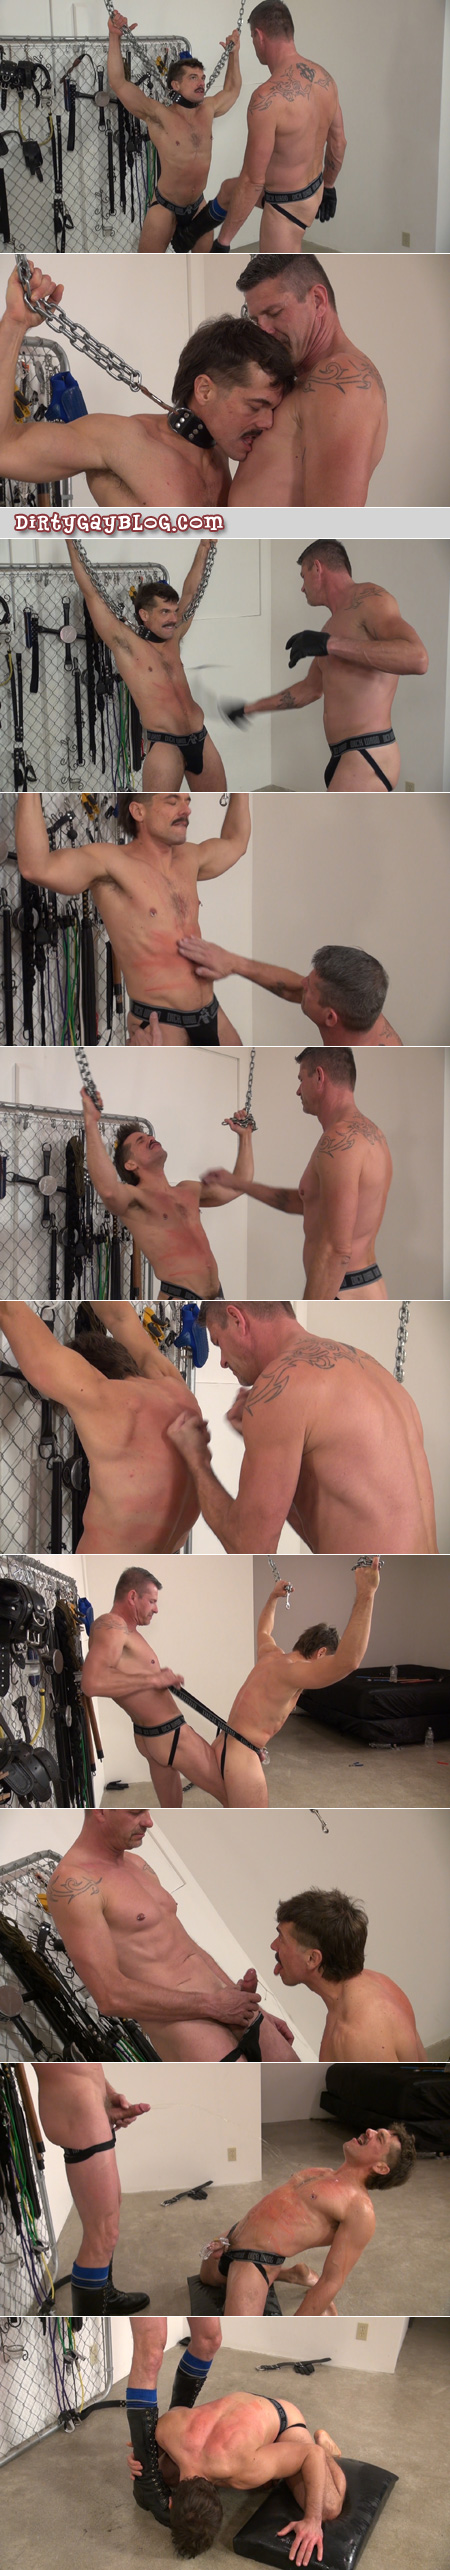 Leather boy loves getting gay BDSM from his dominant Sir.